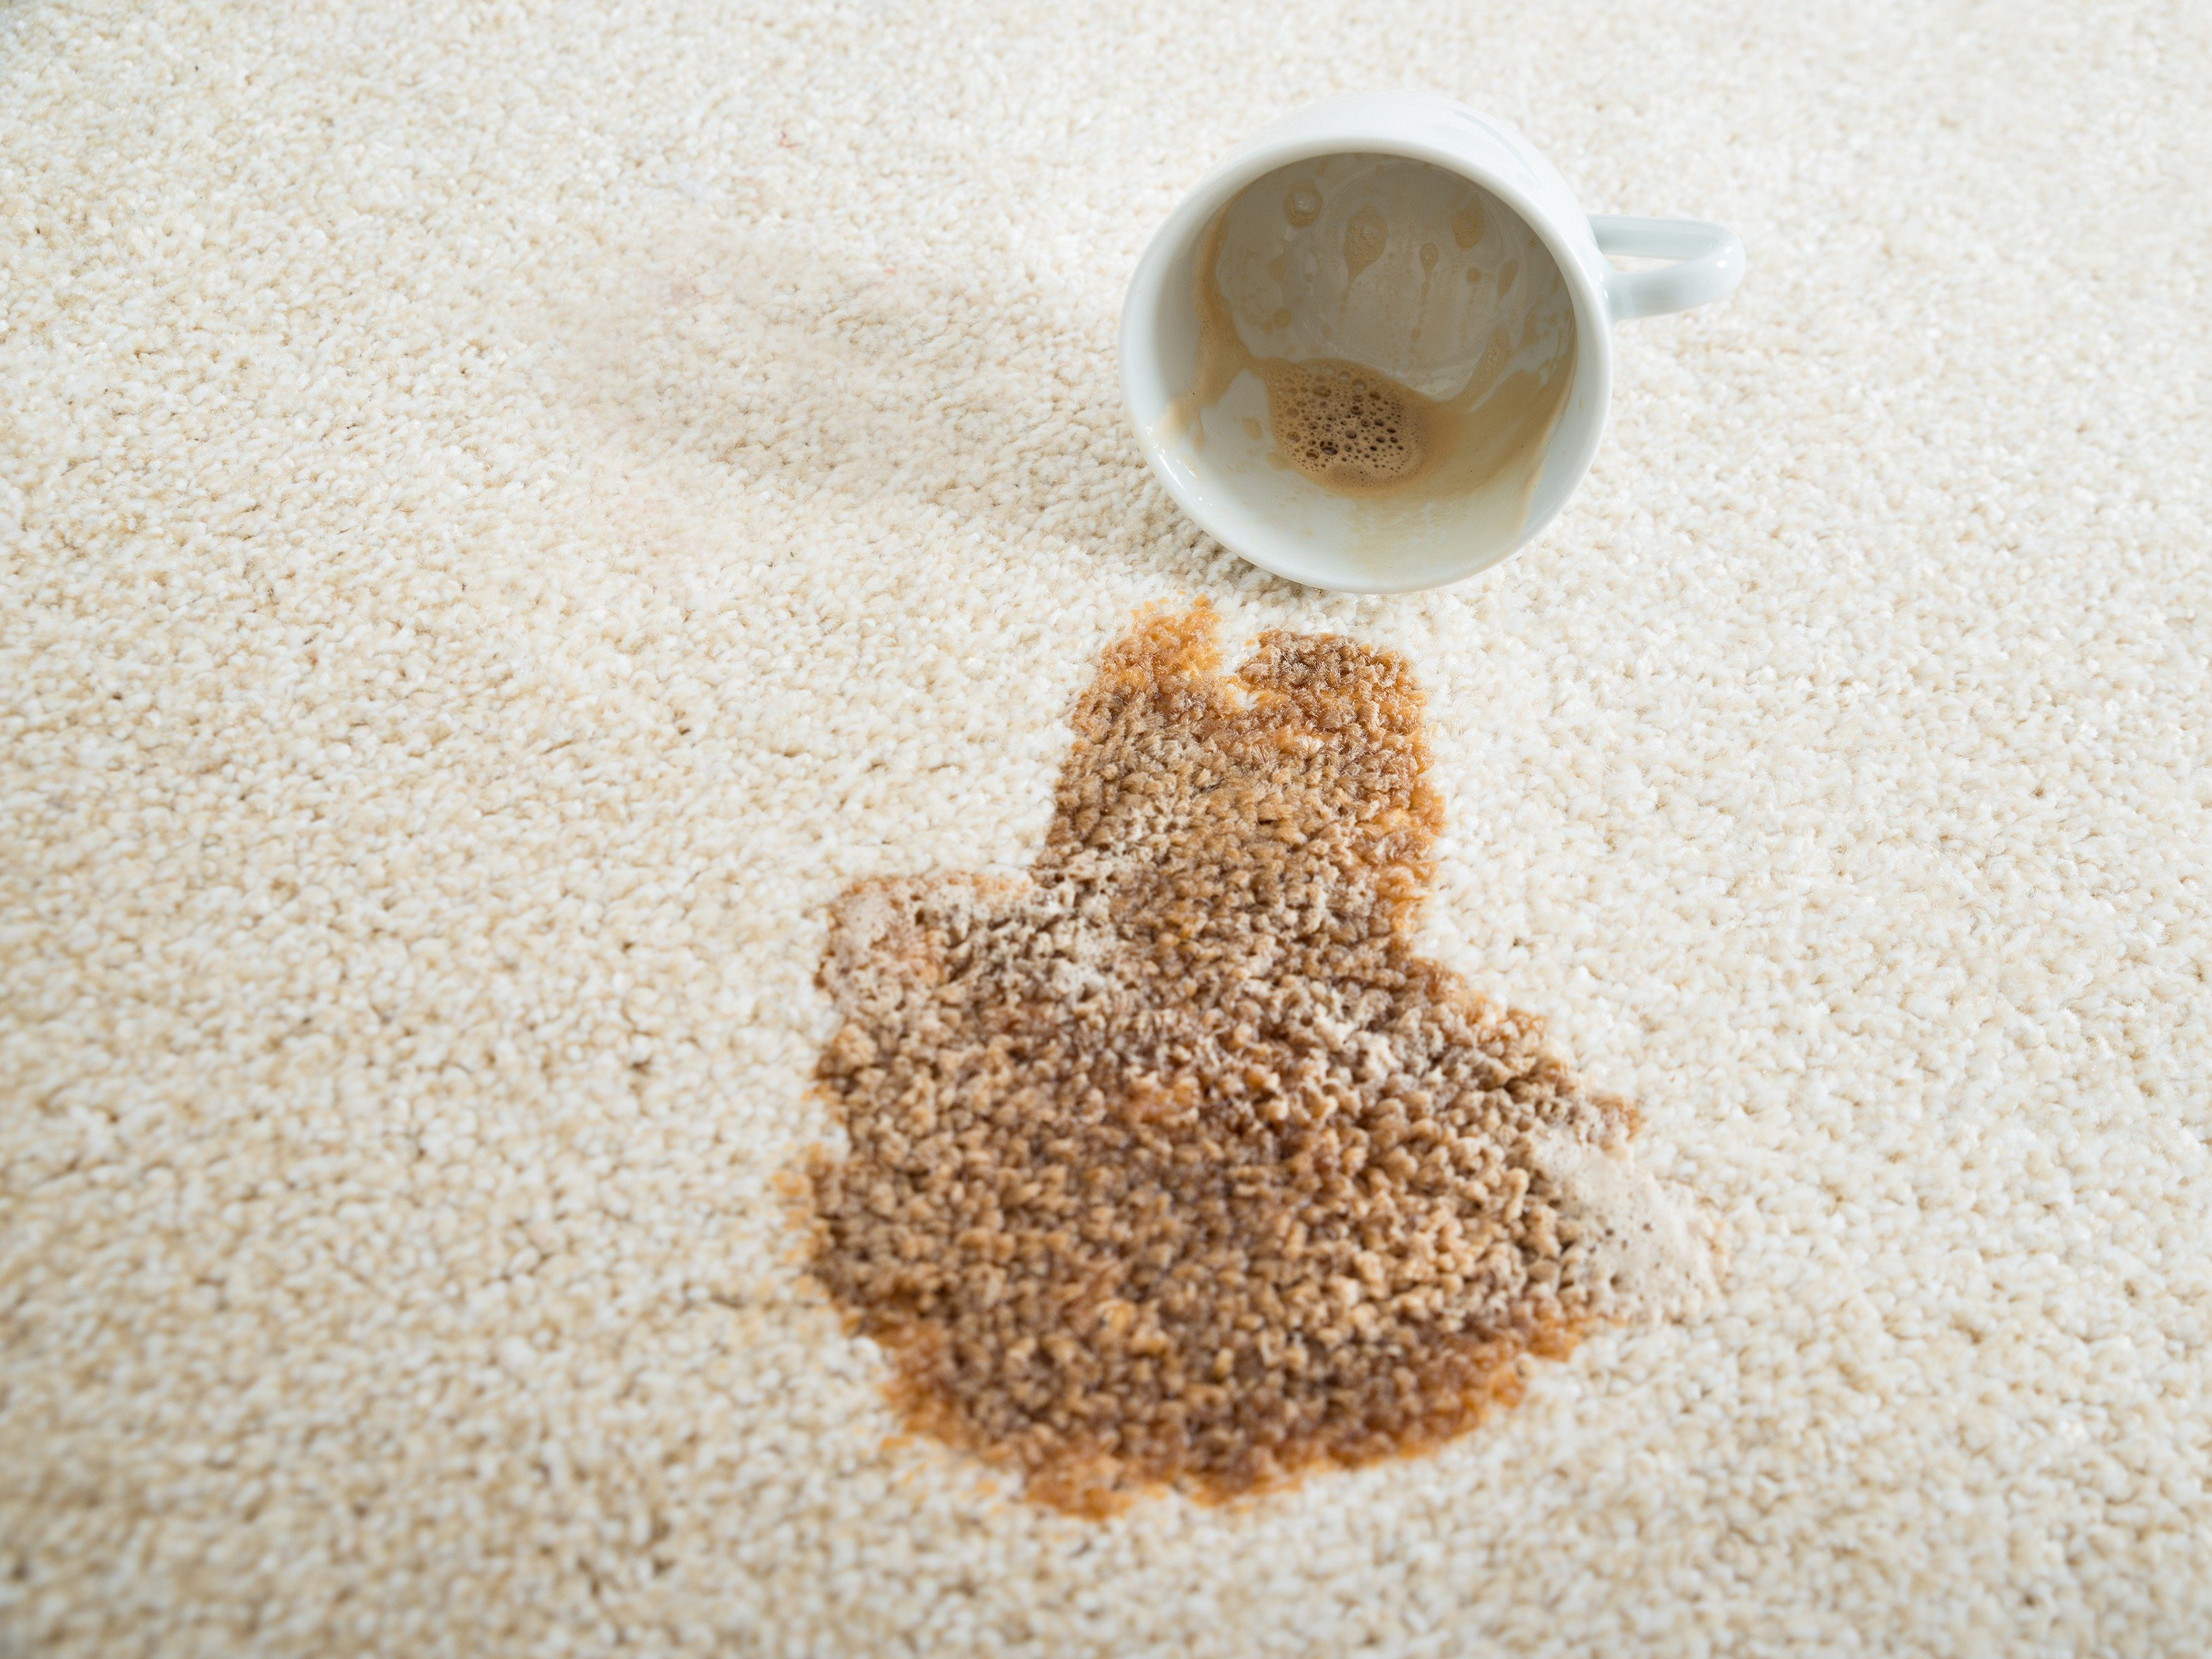 3. Use Beer to Remove Tea and Coffee Rug Stains